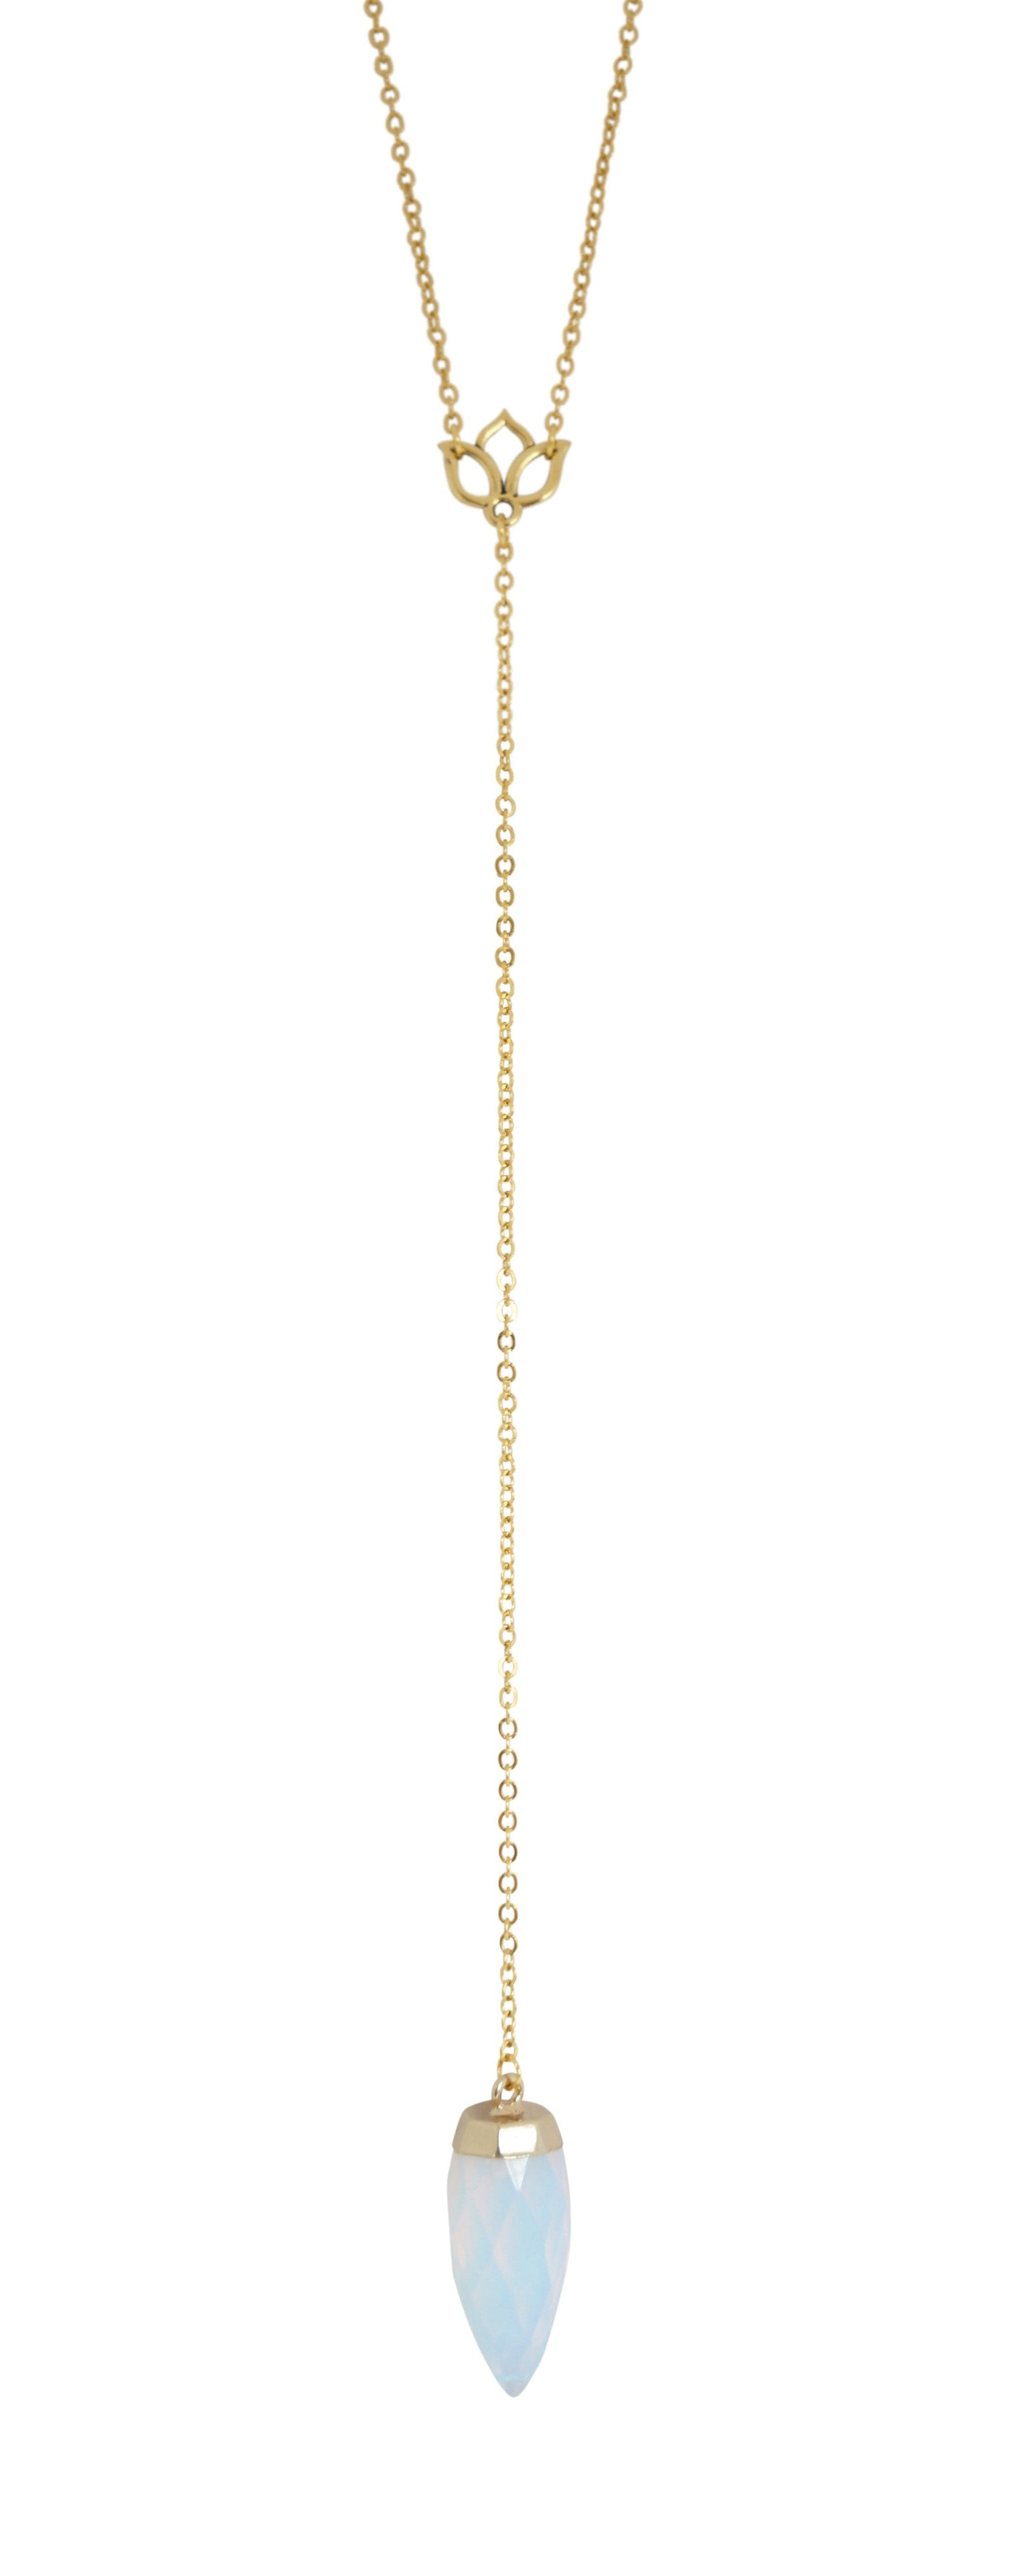 Tranquil Lariat Necklace - Carolyn Hearn Designs